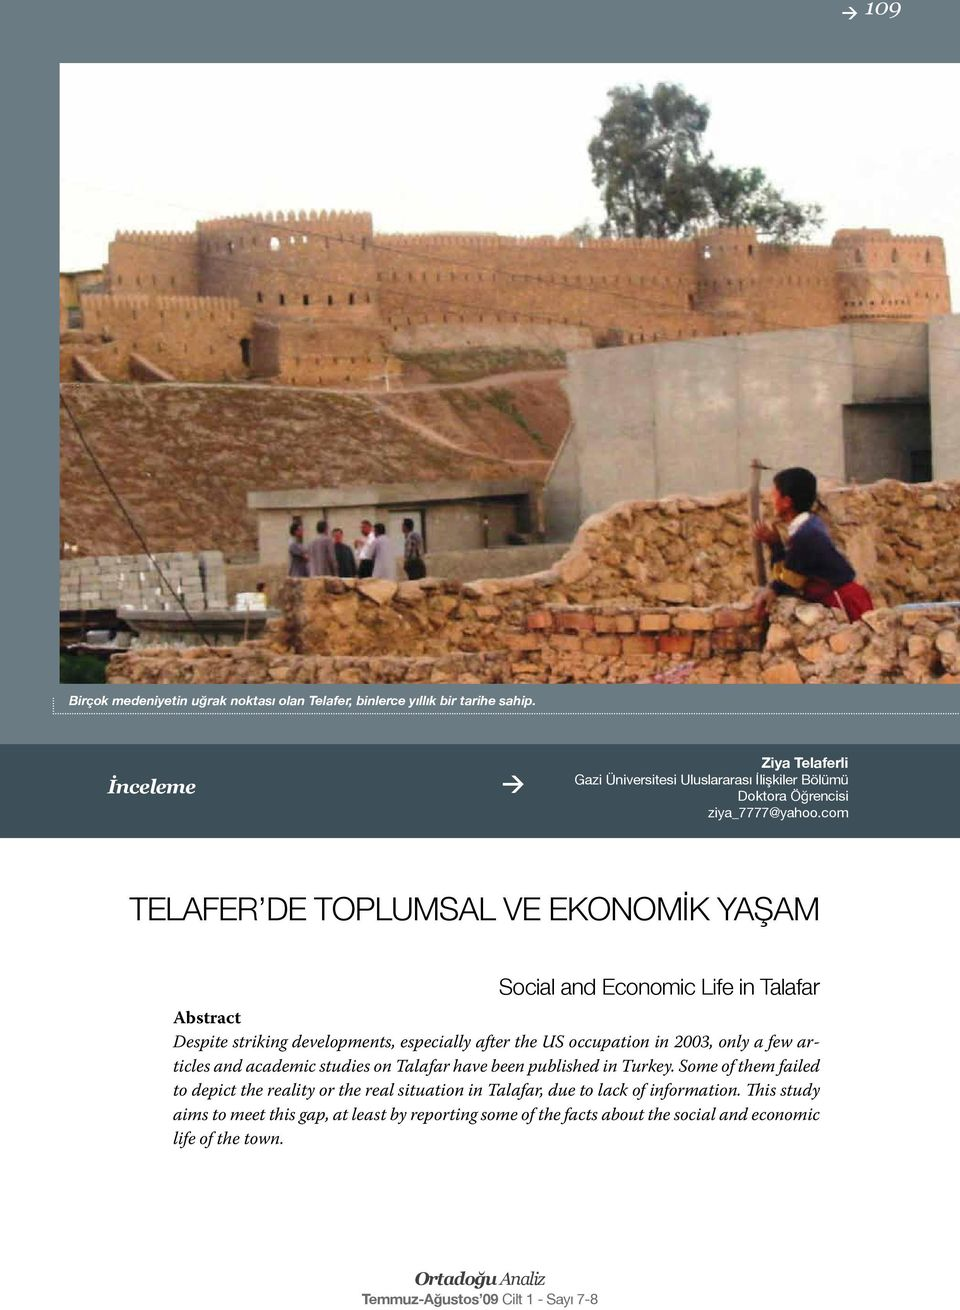 com TELAFER DE TOPLUMSAL VE EKONOMİK YAŞAM Social and Economic Life in Talafar Abstract Despite striking developments, especially after the US occupation in 2003,